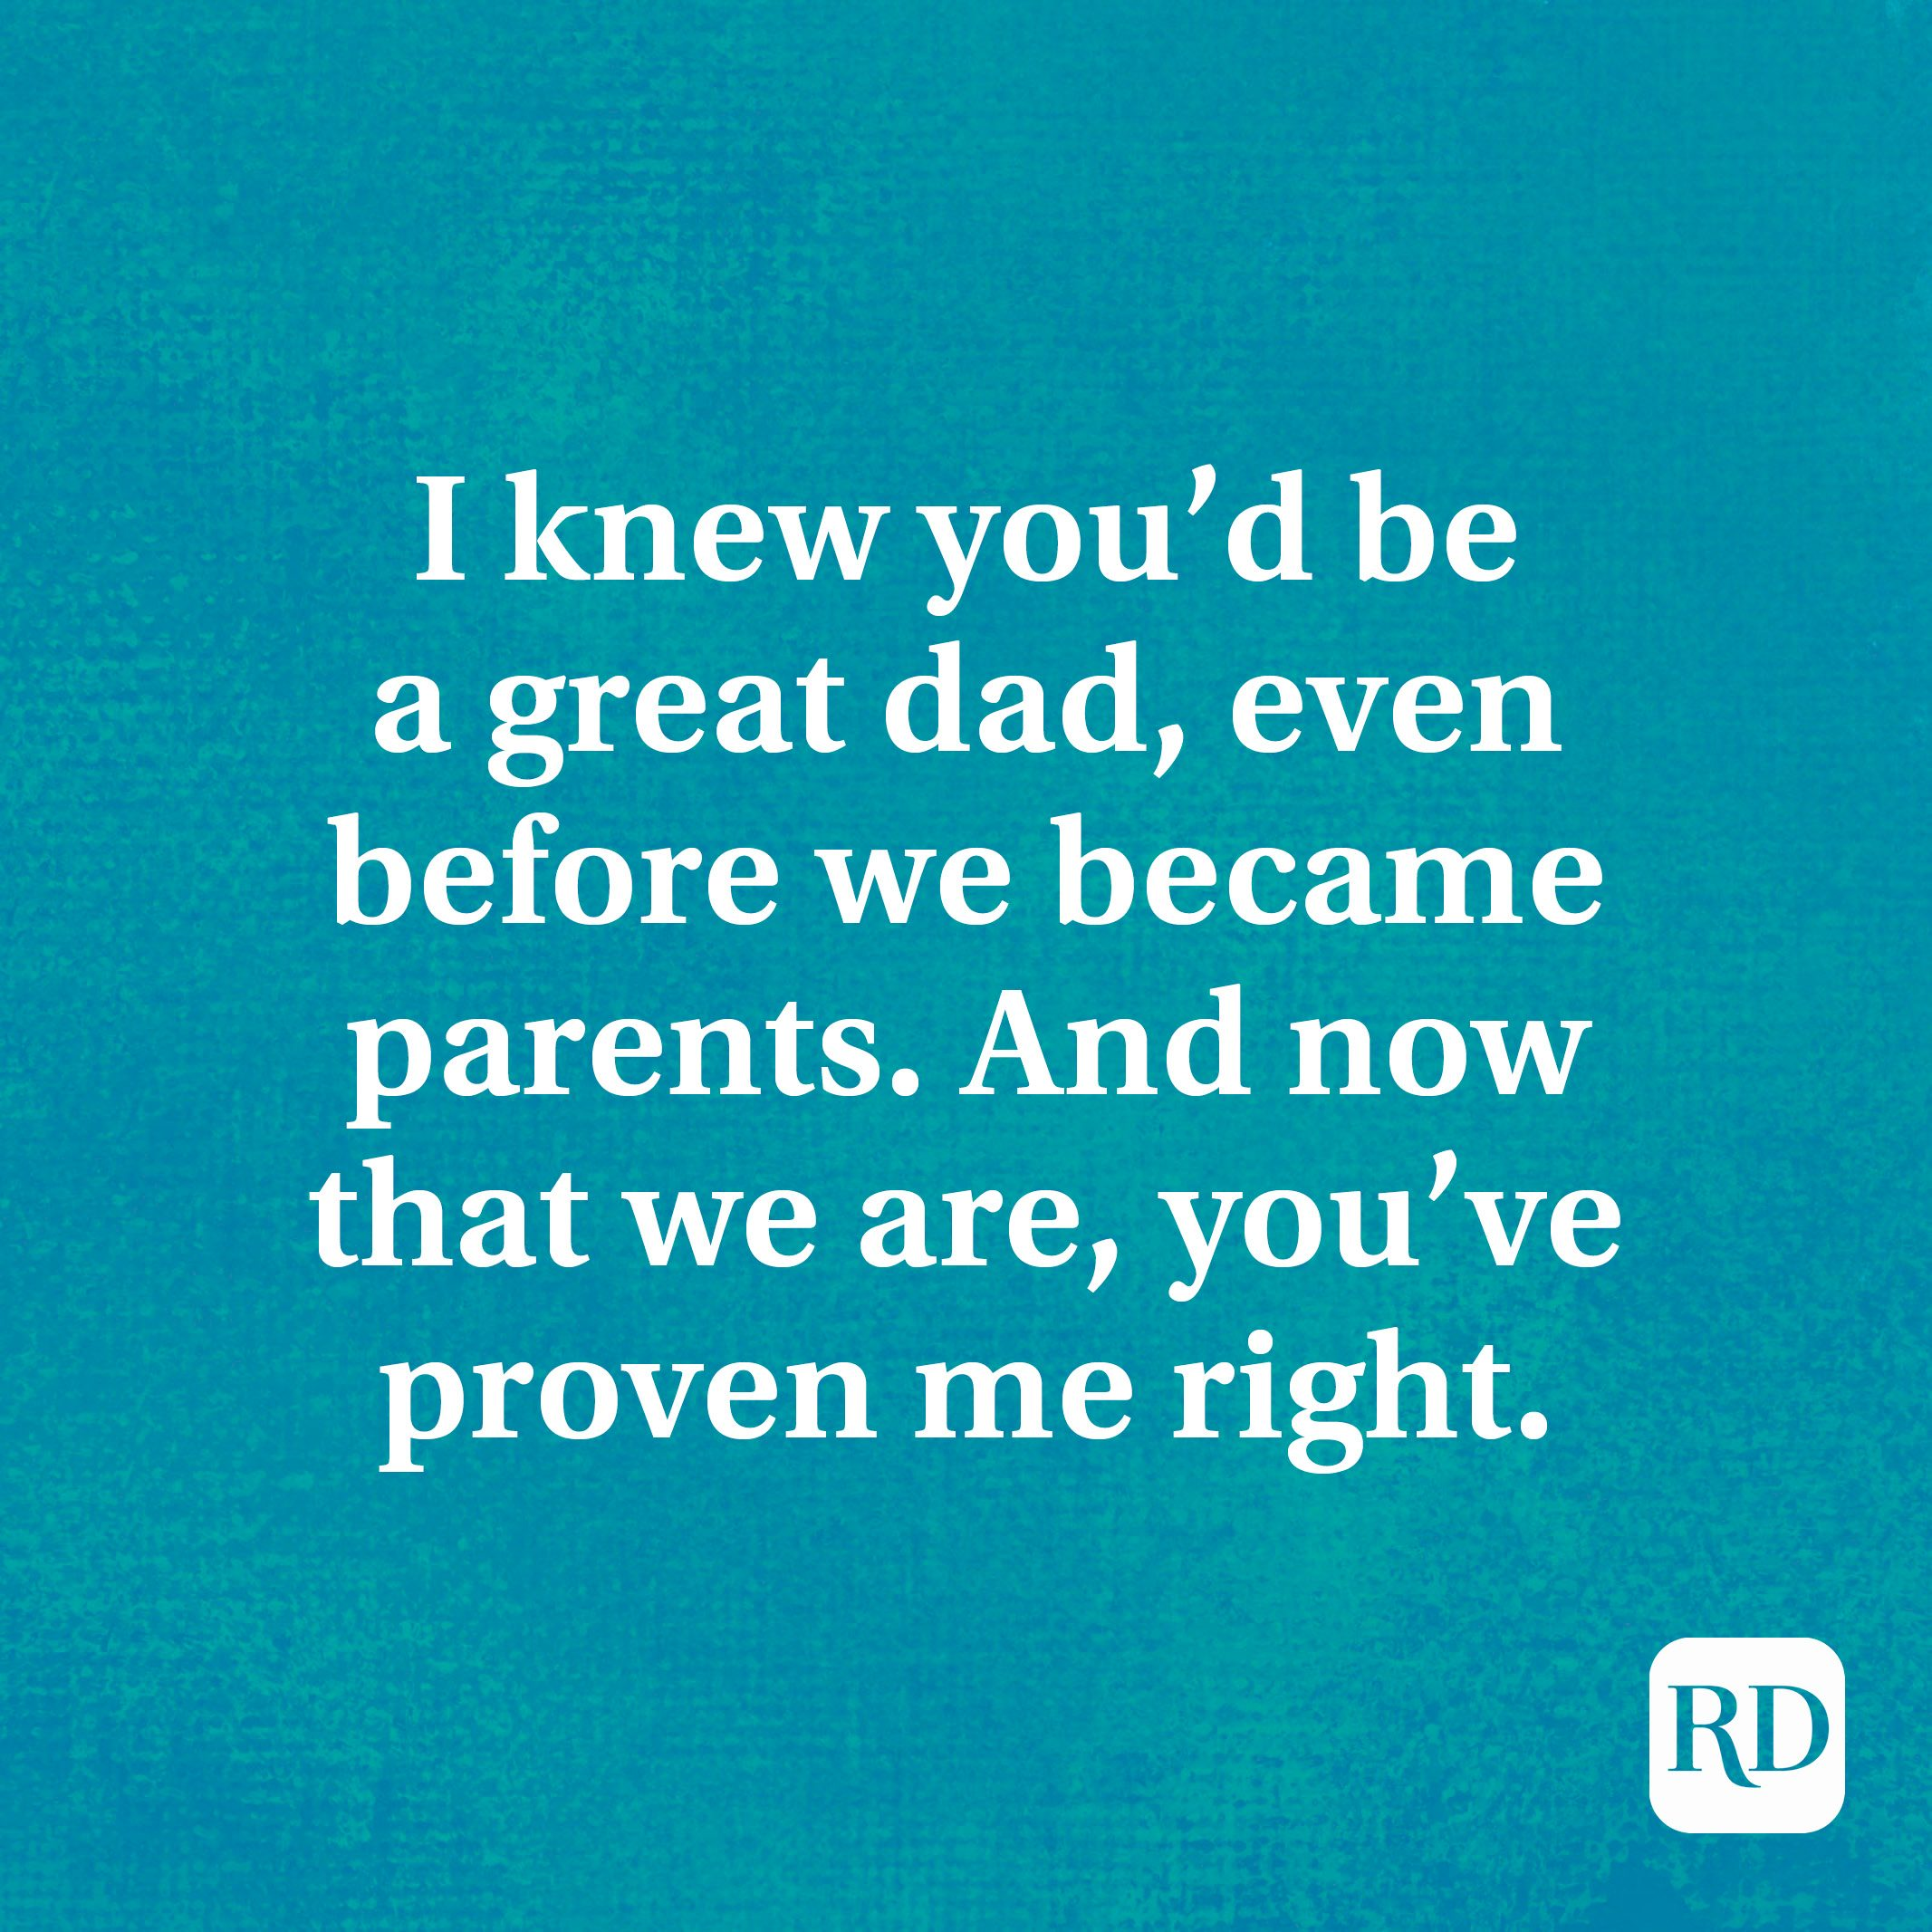 I knew you'd be a great dad, even before we became parents. And now that we are, you've proven me right.